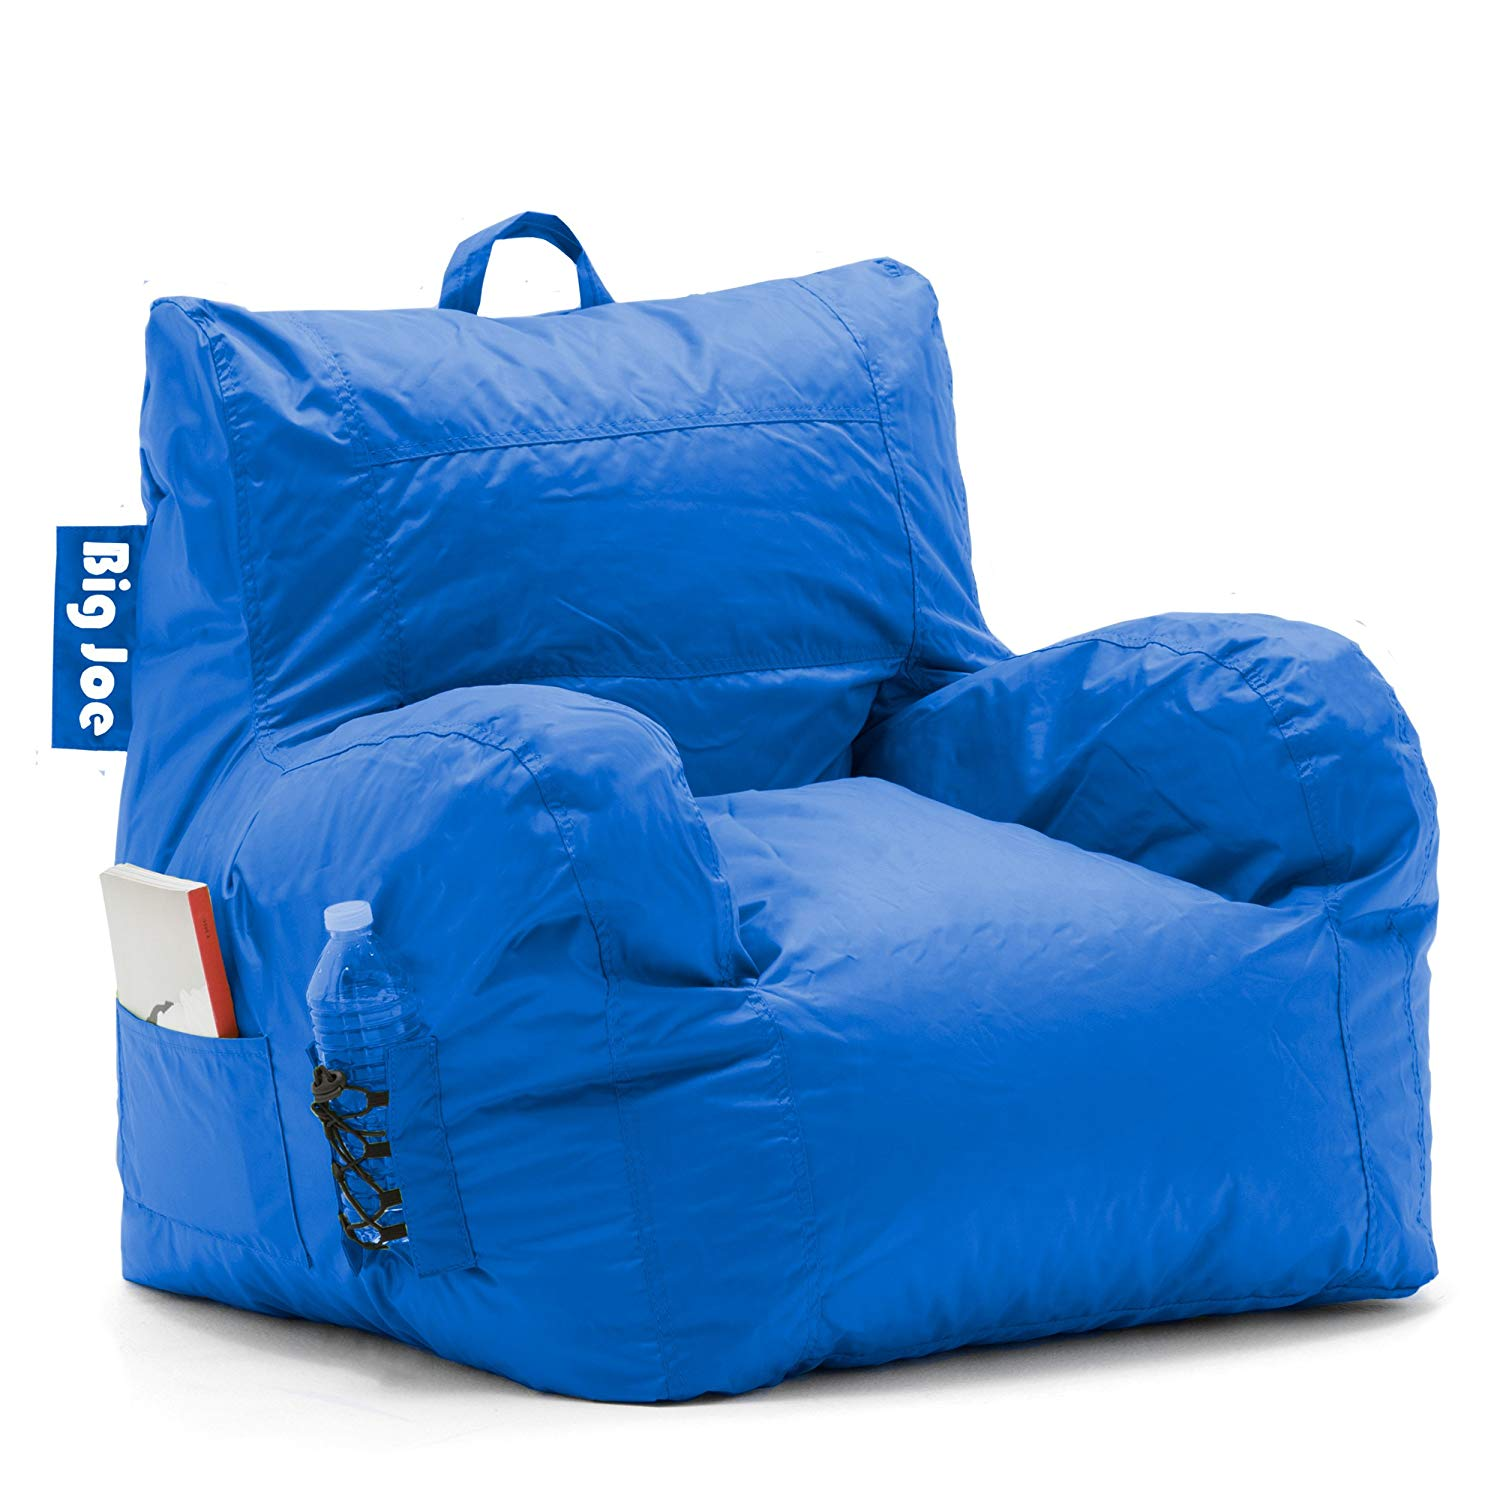 Best Bean Bag Chairs For Kids Ultimate Buyer S Guide